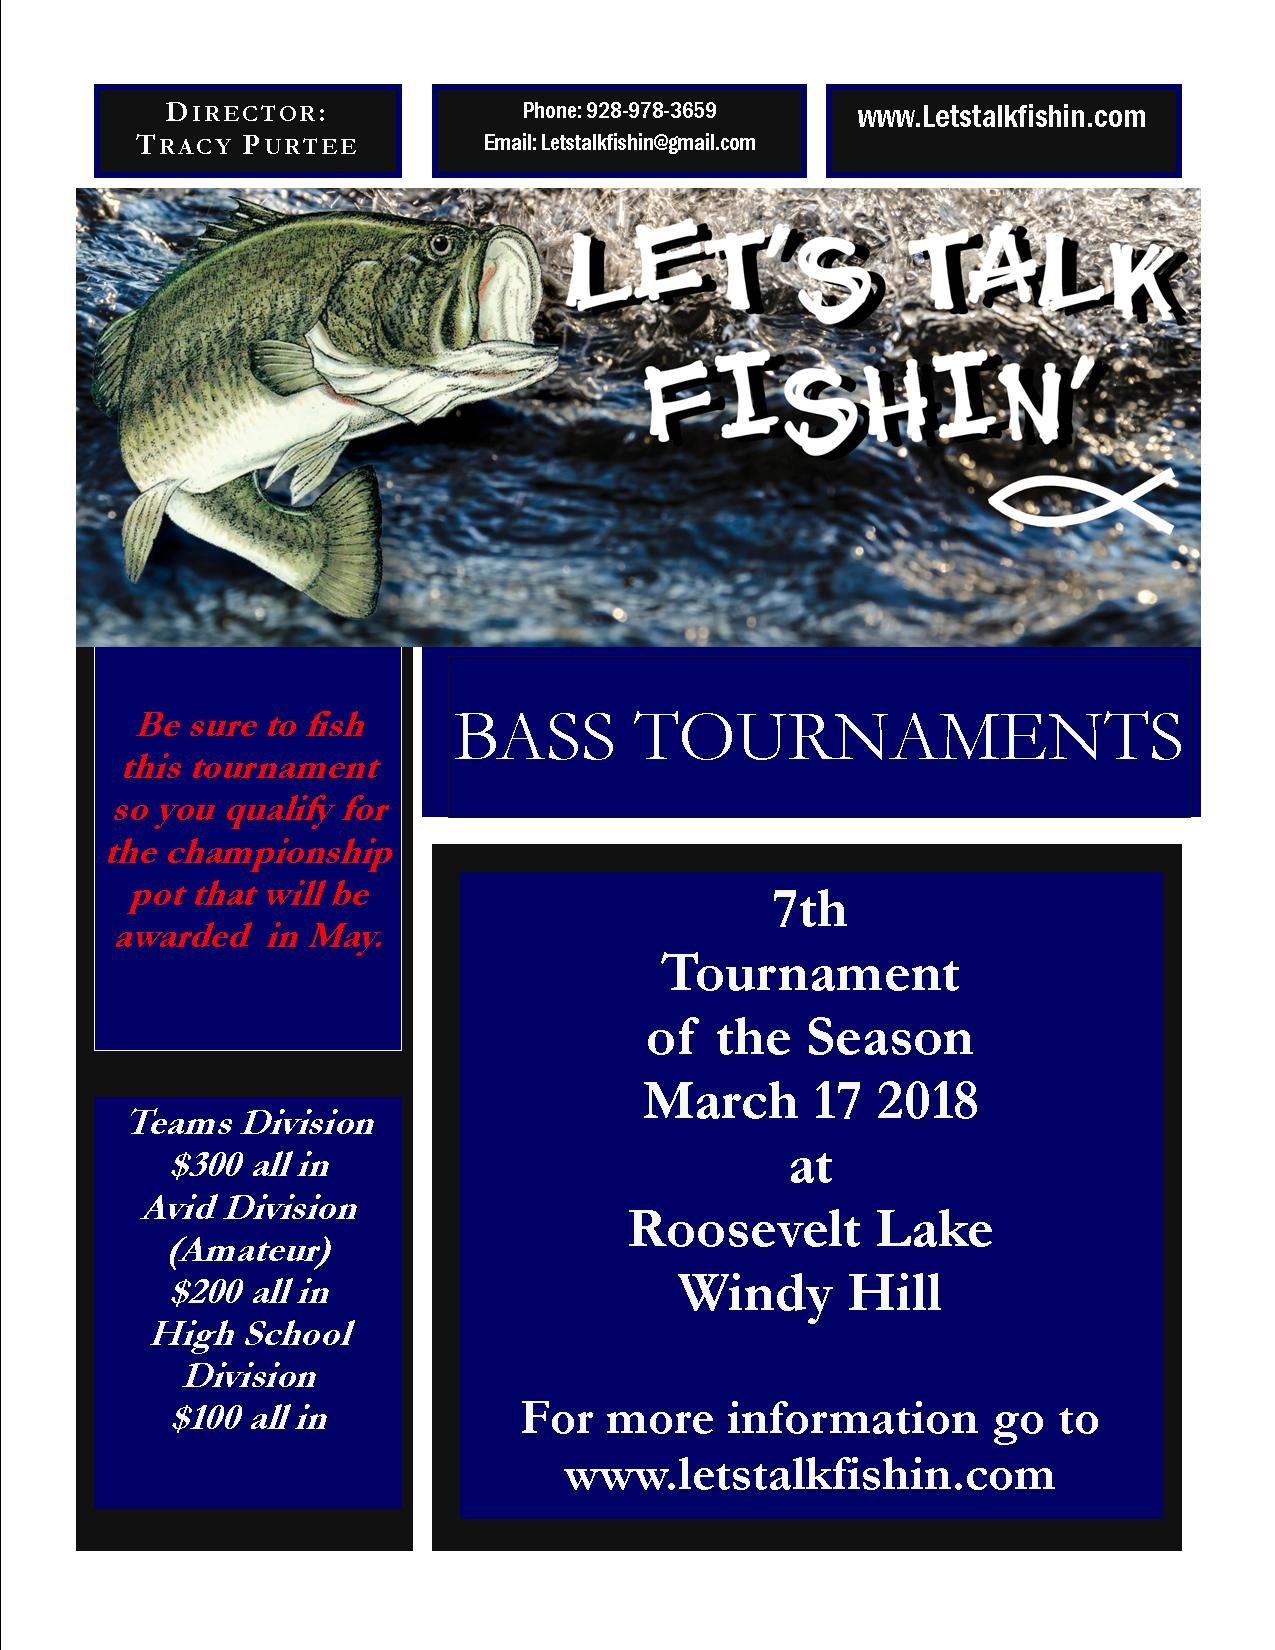 Click image for larger version  Name:7th Tournament.jpg Views:2195 Size:283.6 KB ID:96826